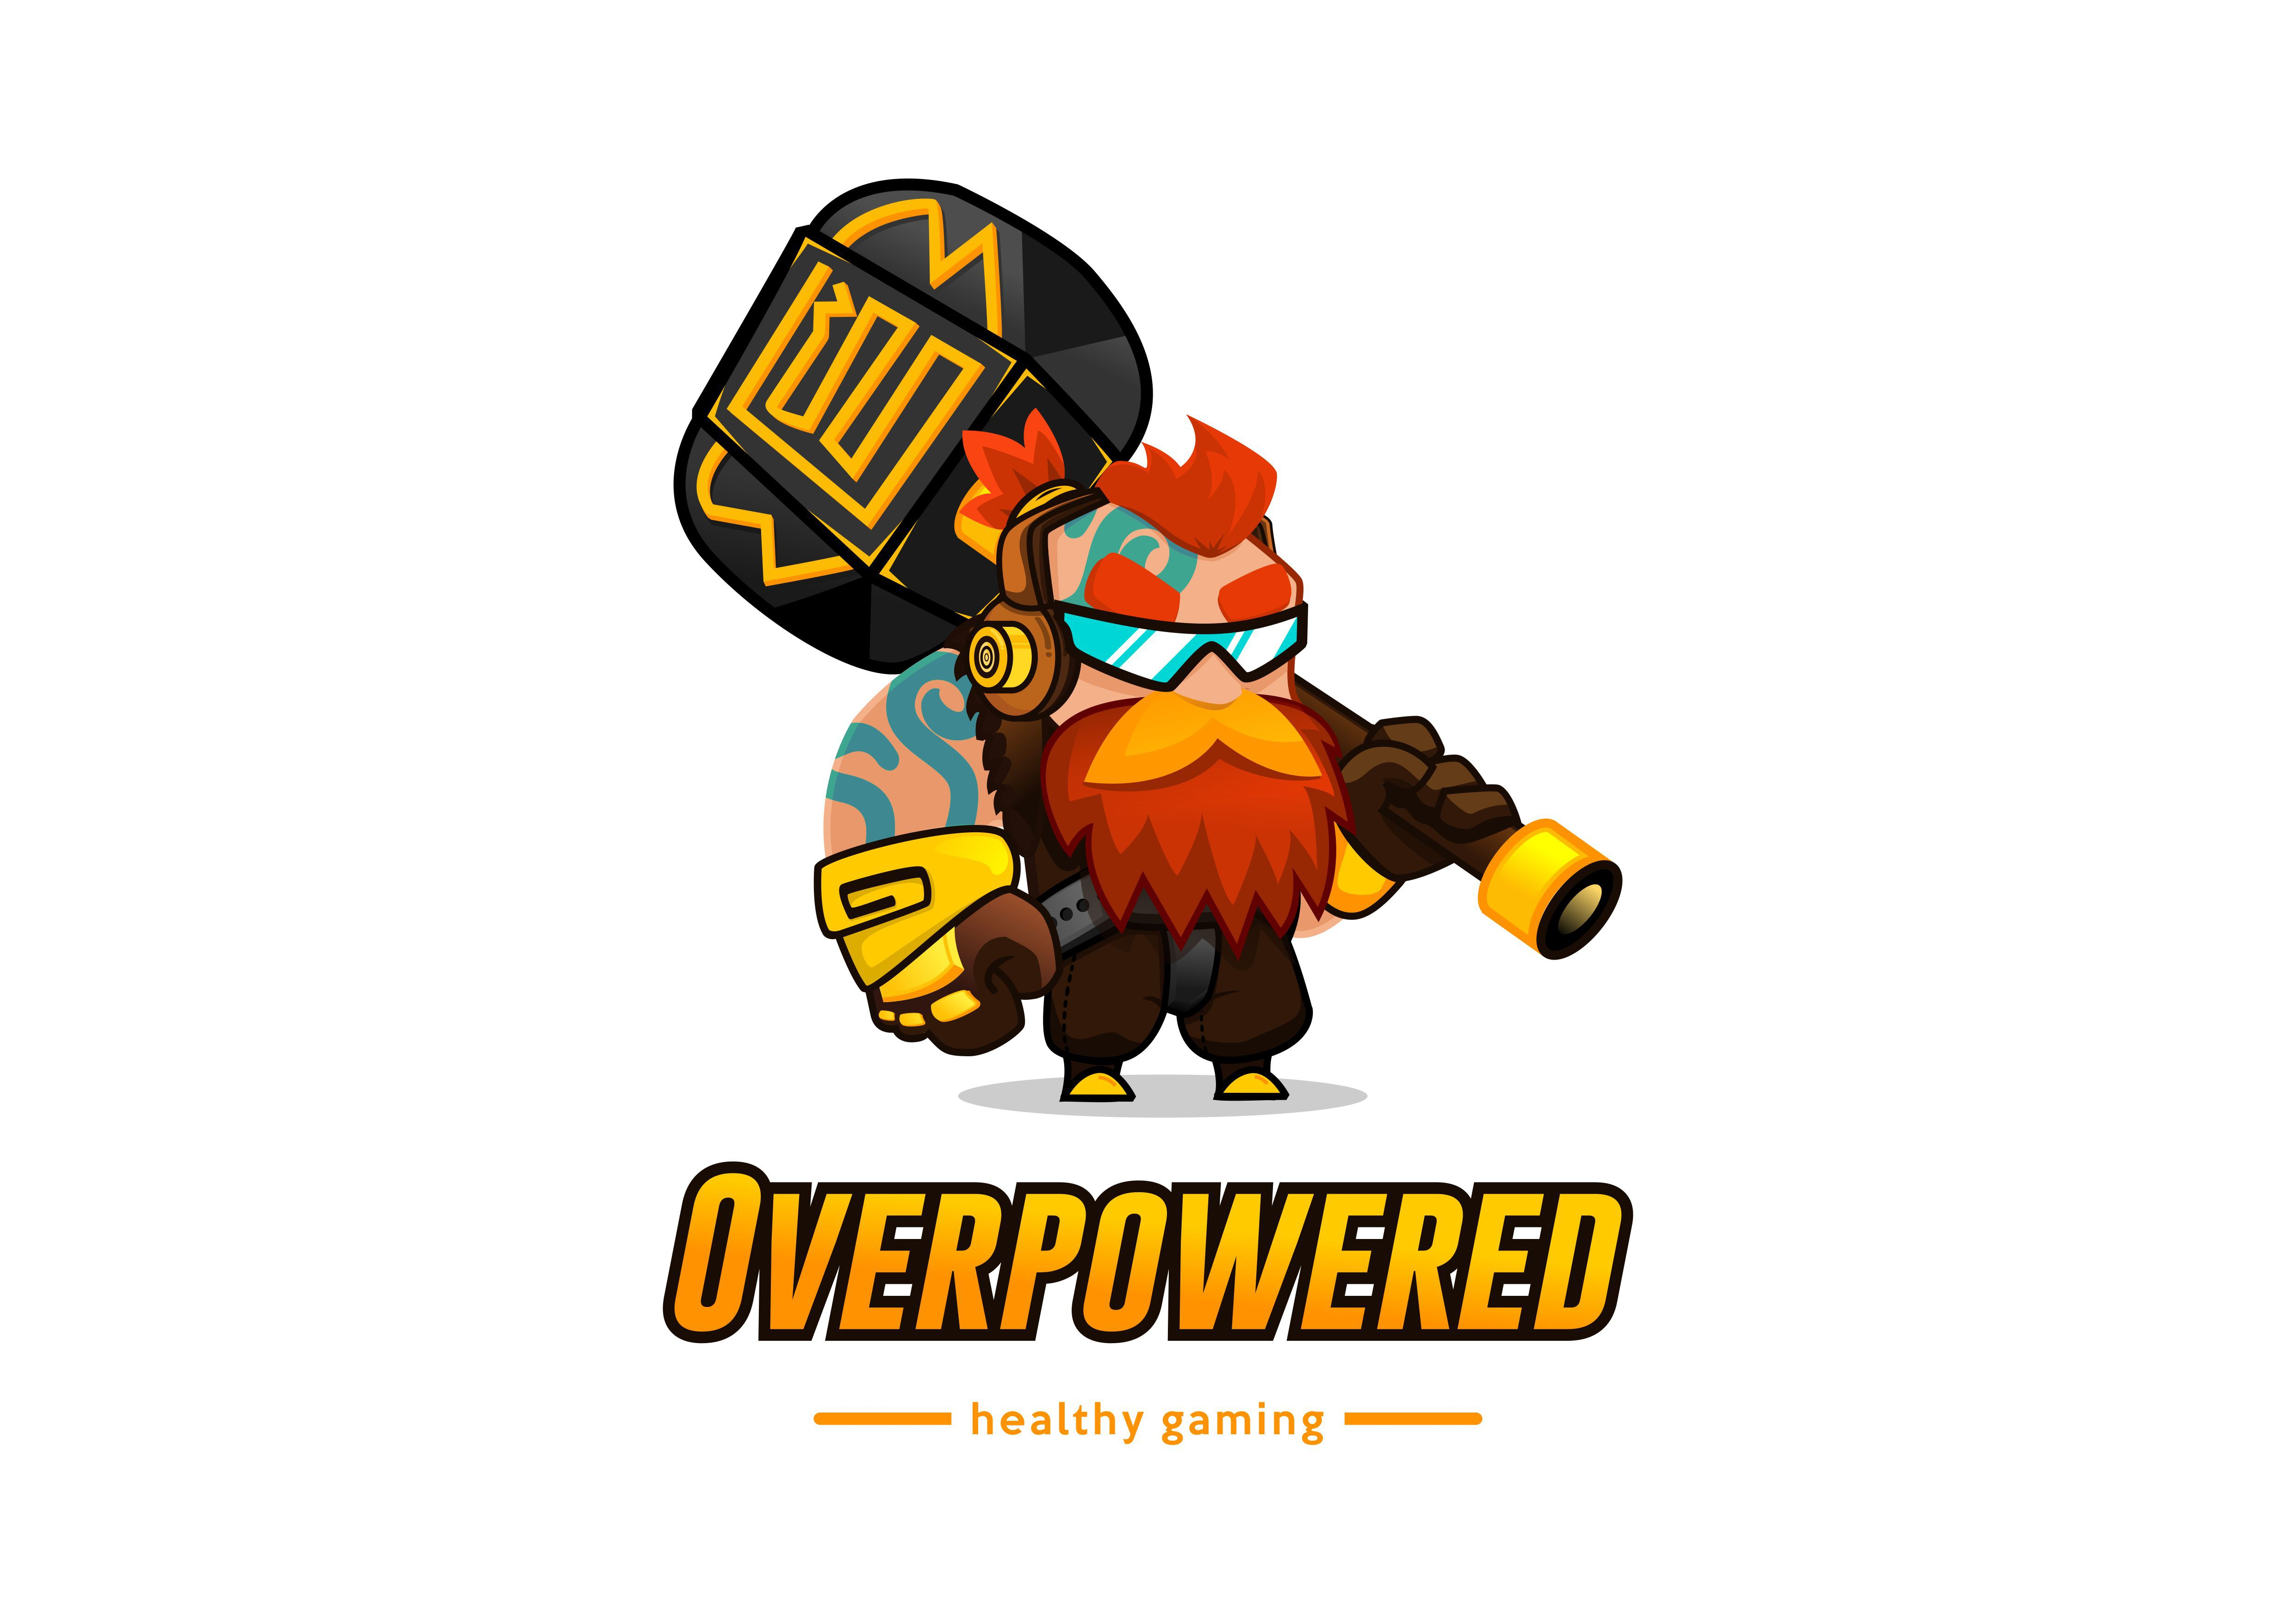 Overpowered needs a strong and playful logo